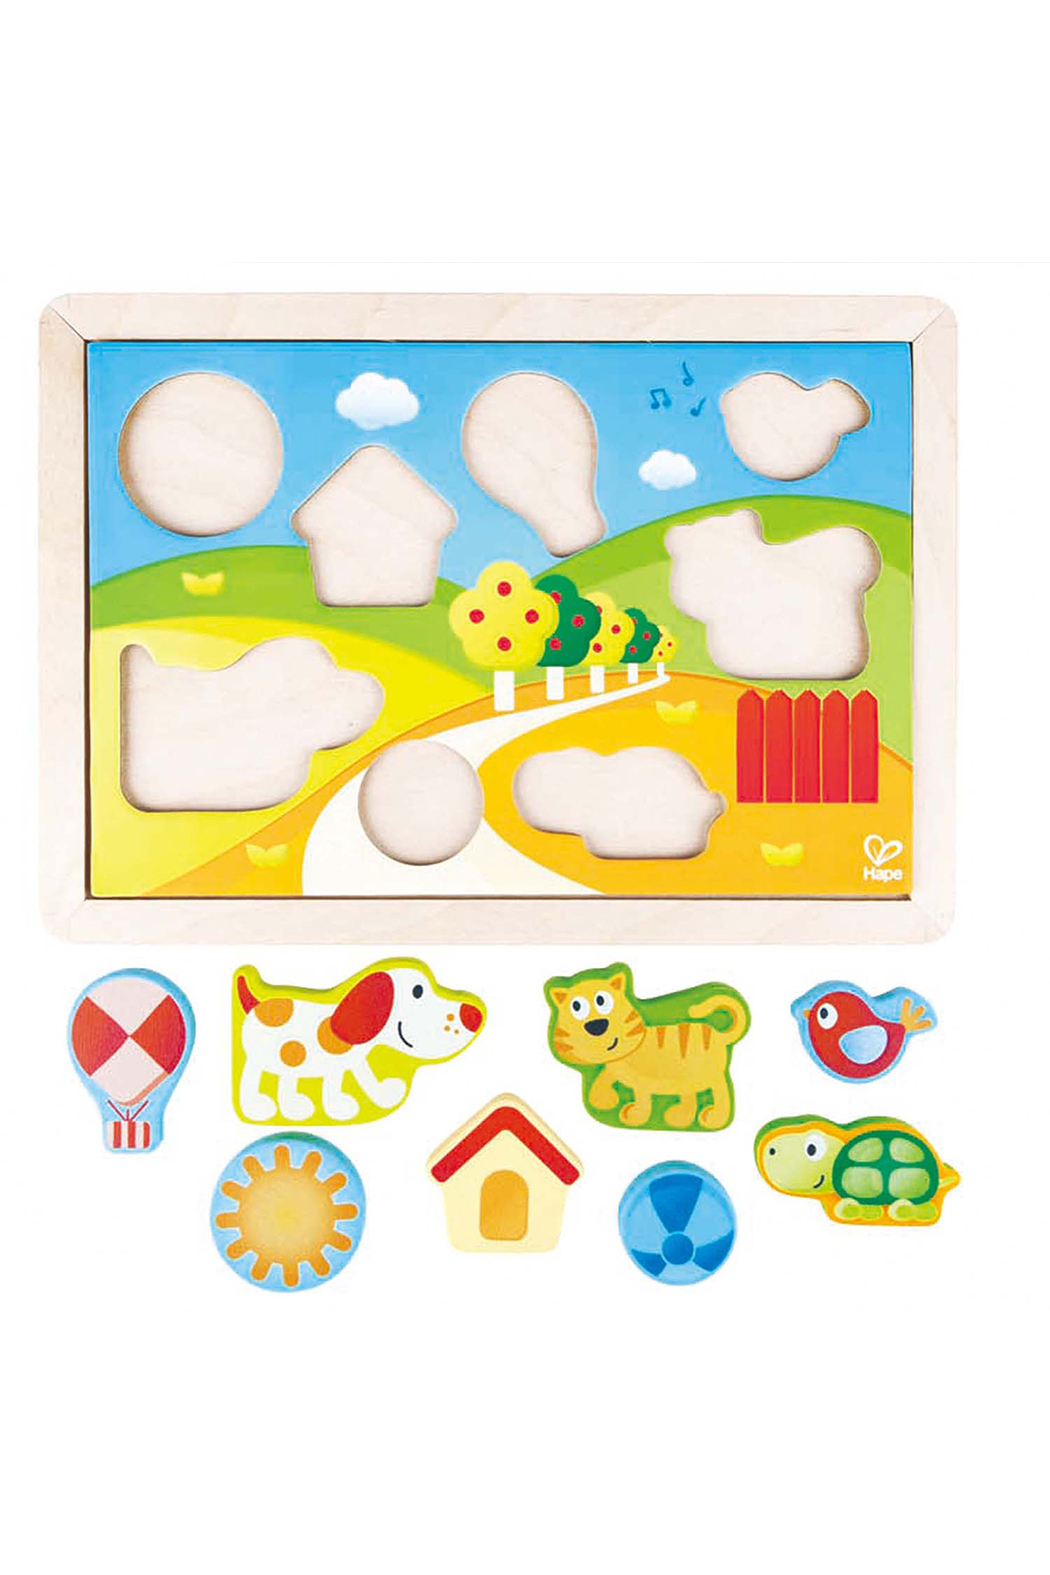 Hape  Sunny Valley 3 in 1 Puzzle - Main Image